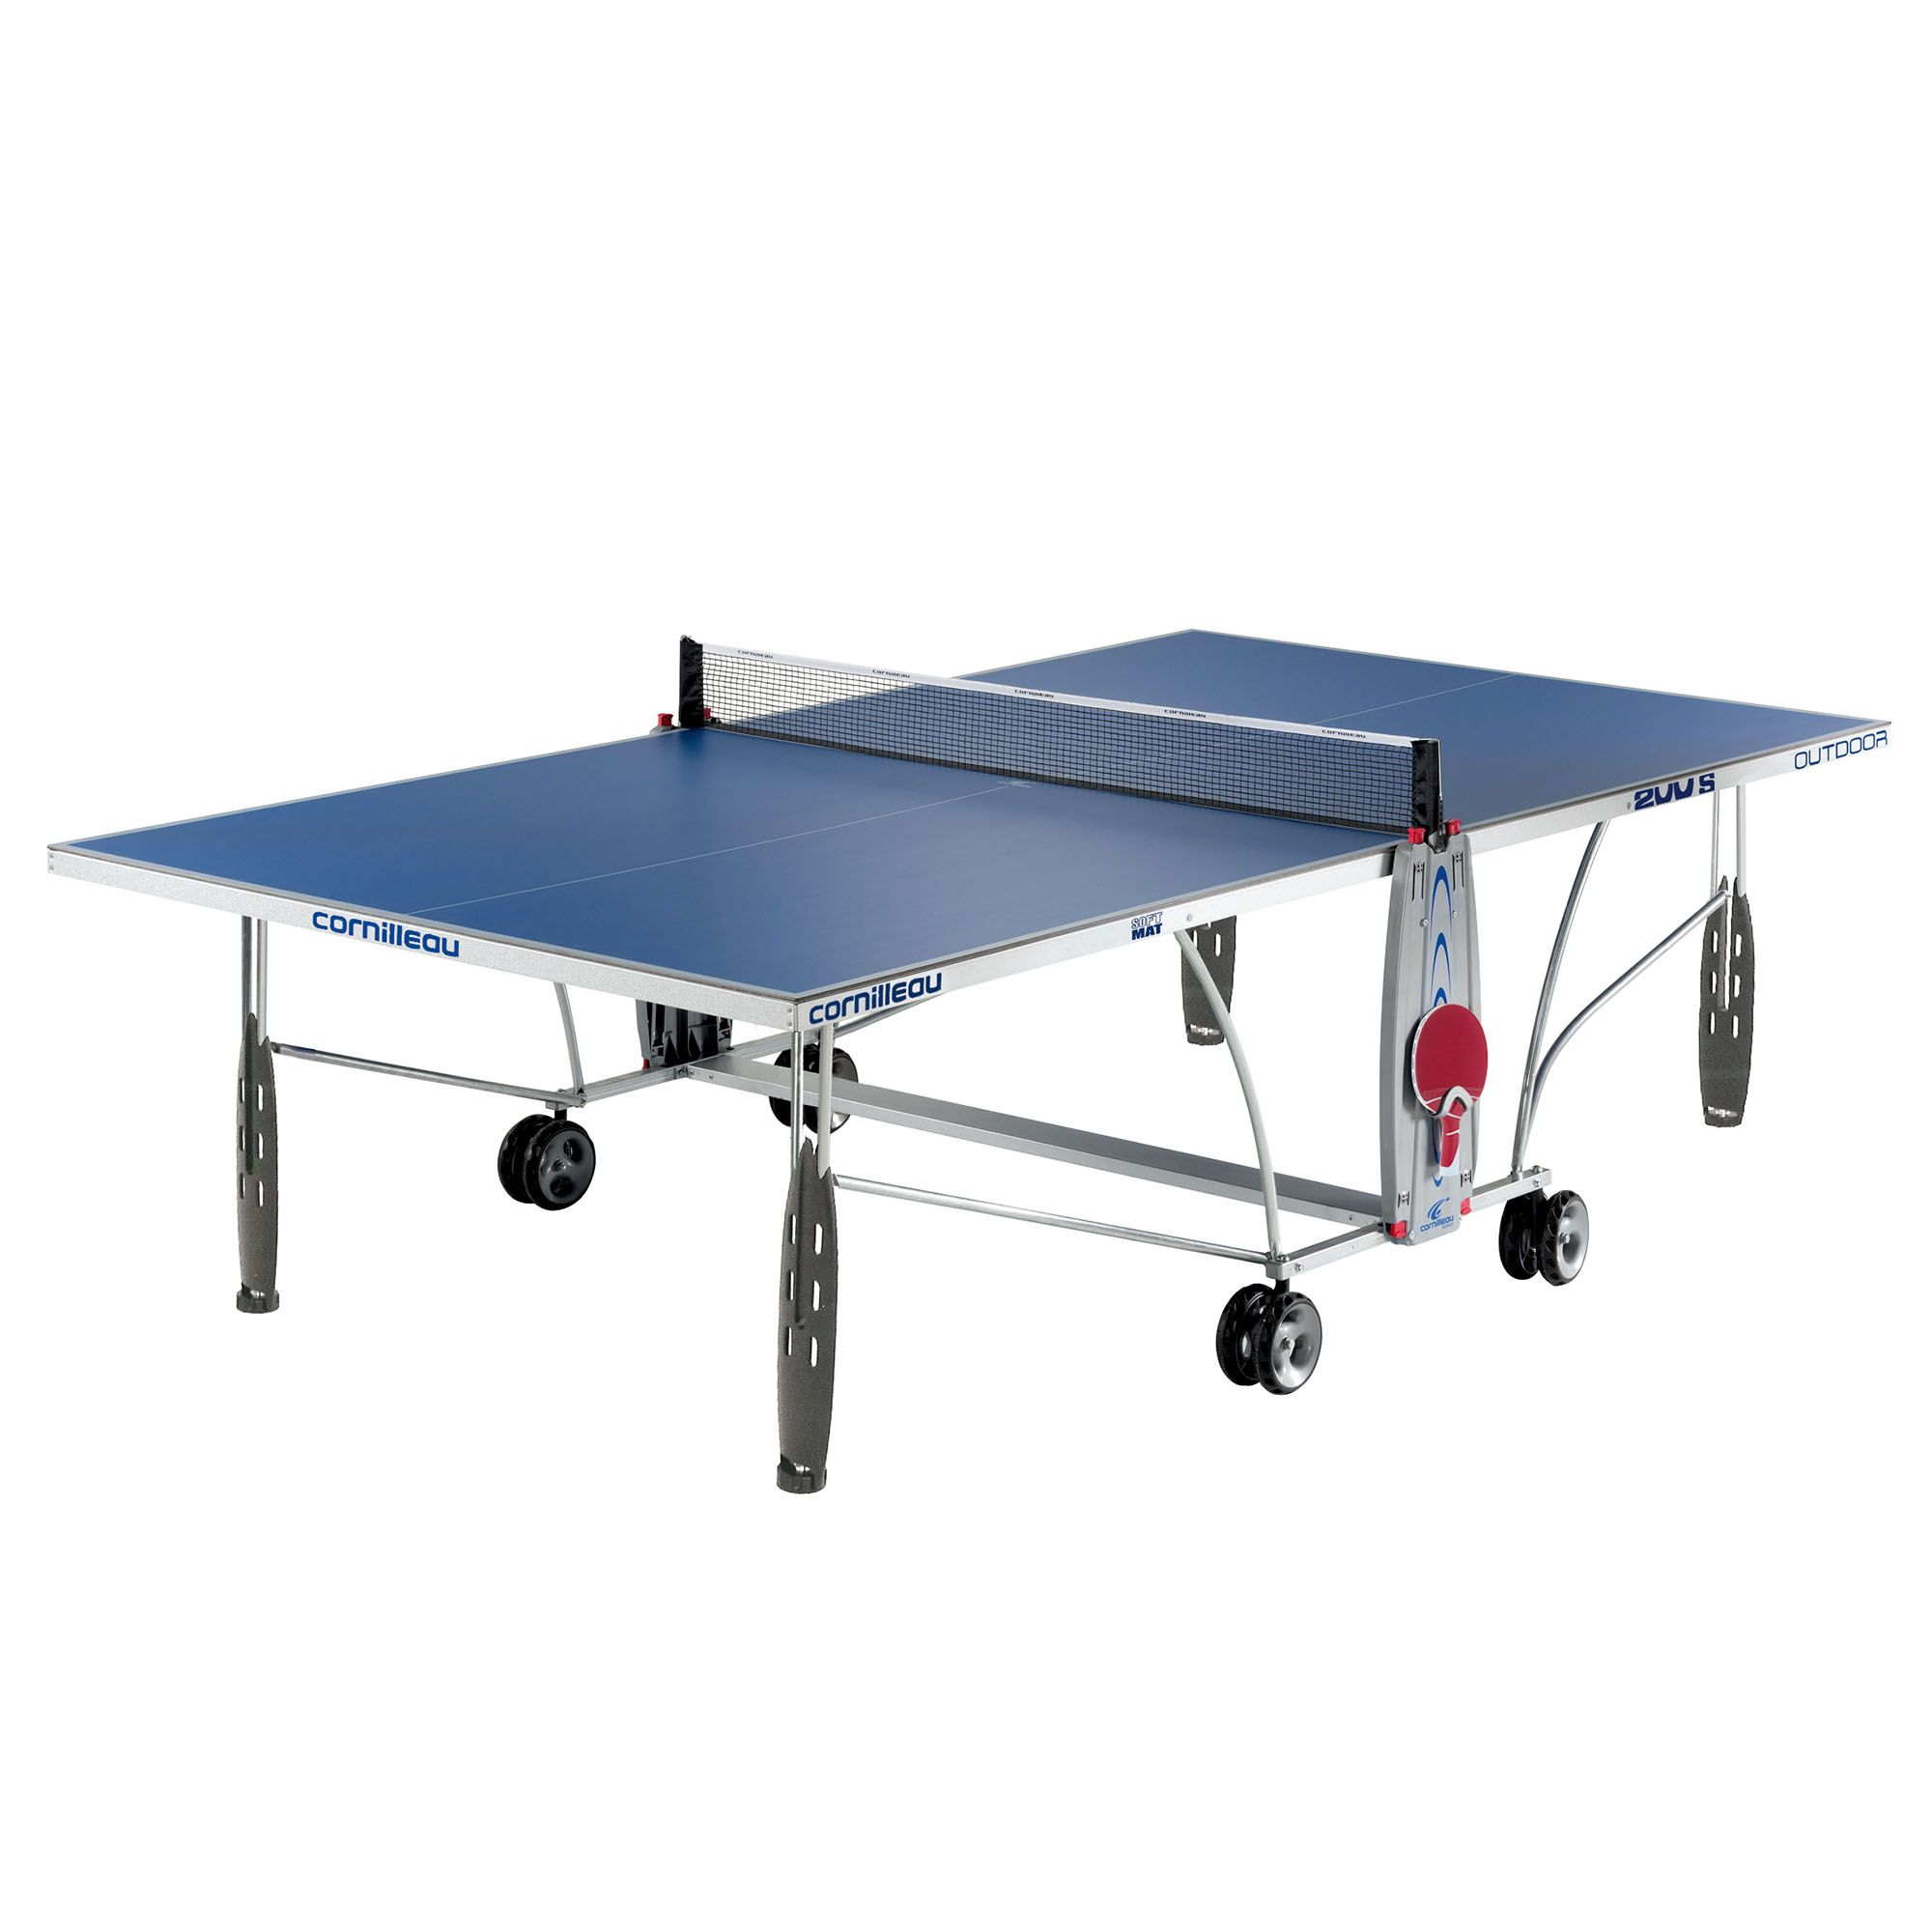 Cornilleau sport 200s rollaway outdoor table tennis table - Weatherproof table tennis table ...